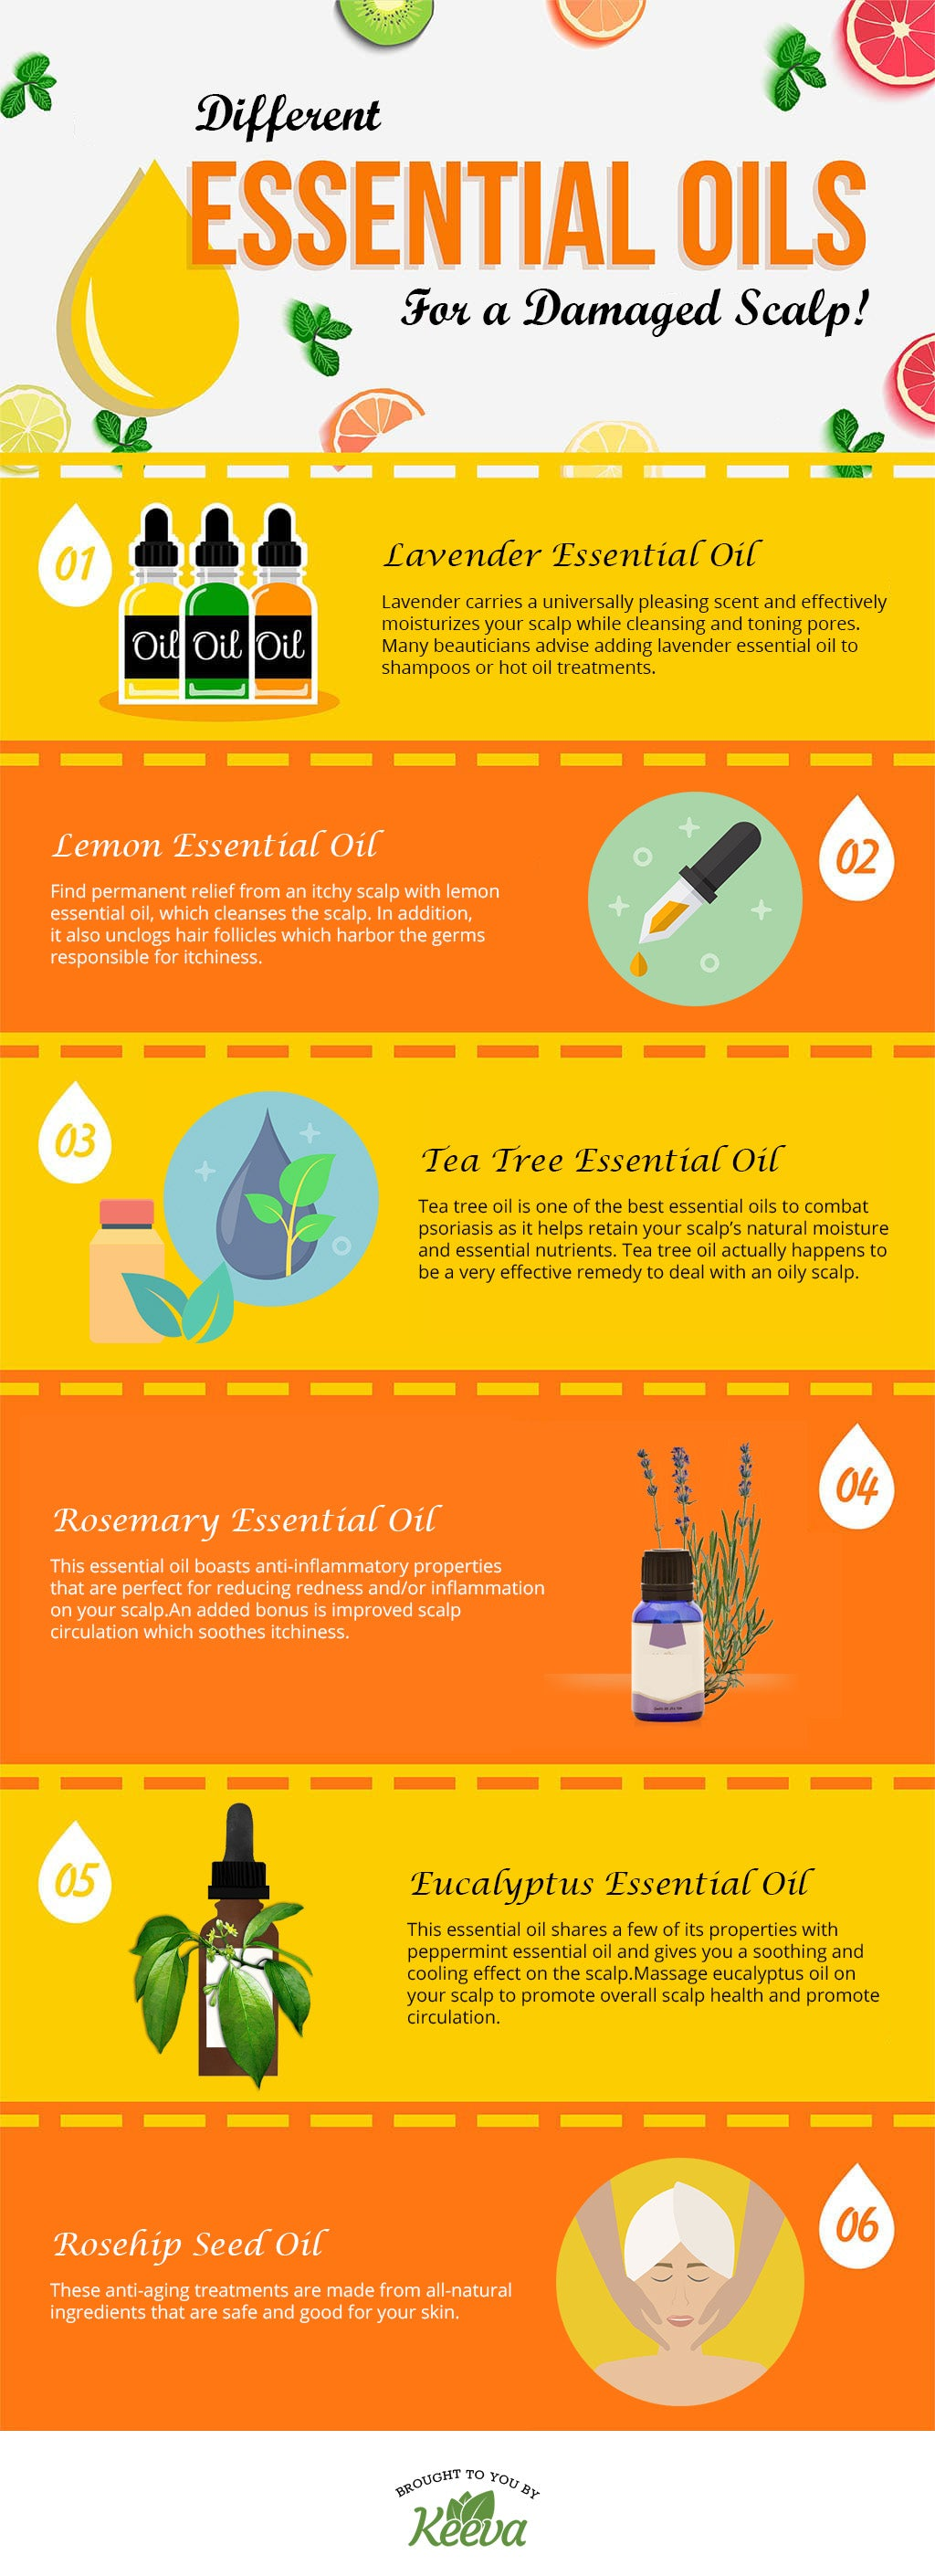 Different Essential Oils For A Damaged Scalp Keeva Organics